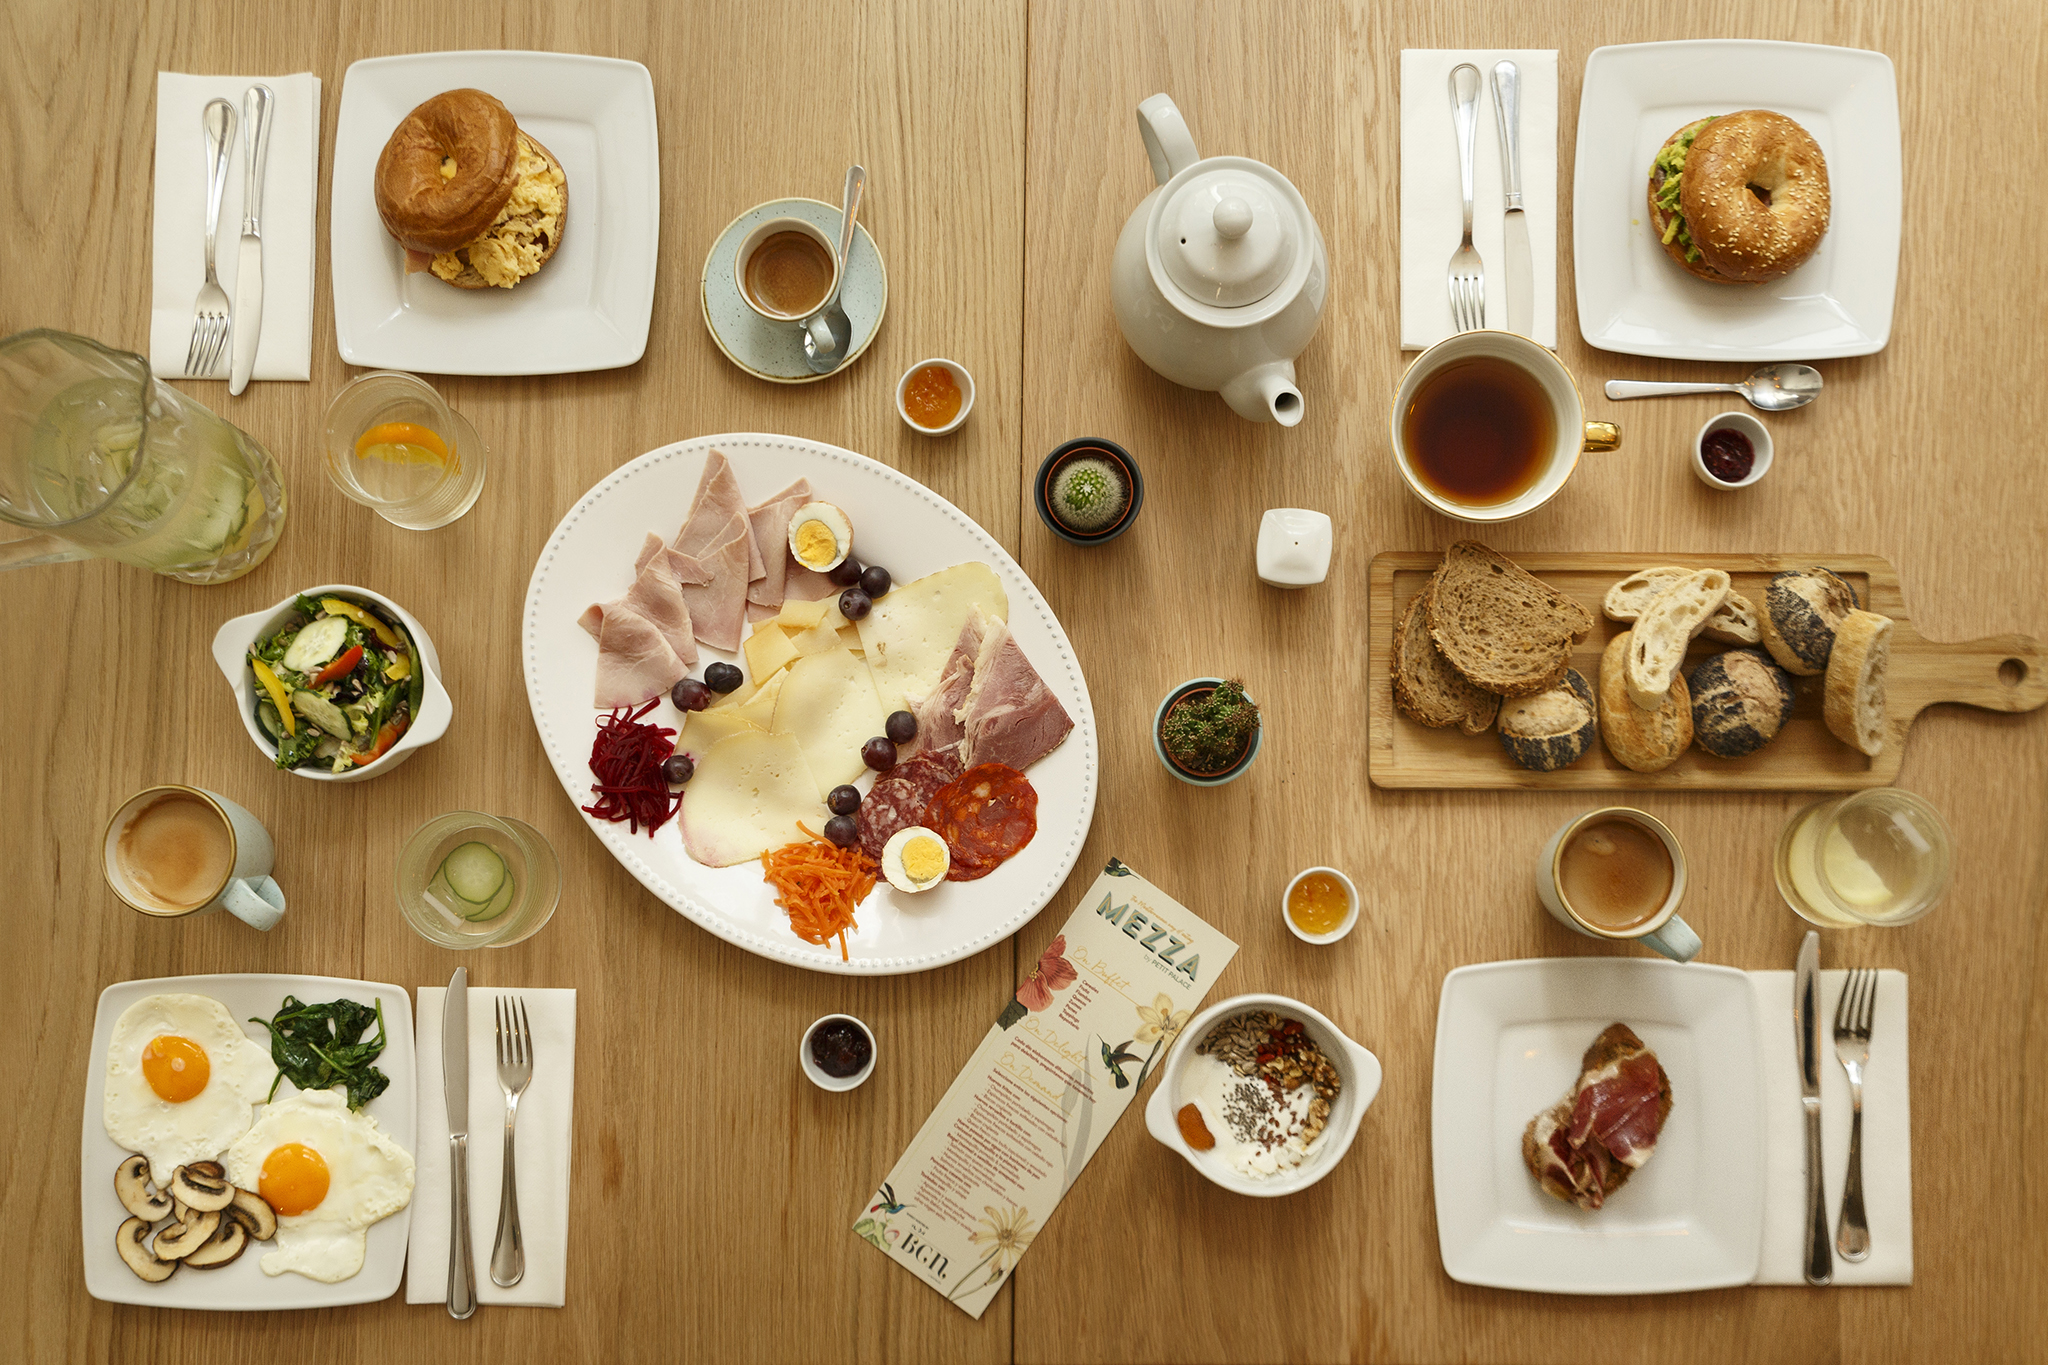 member benefits_ - breakfast buffet + coworking day for 19€+vat onlyclick here15% off food&berverage menu